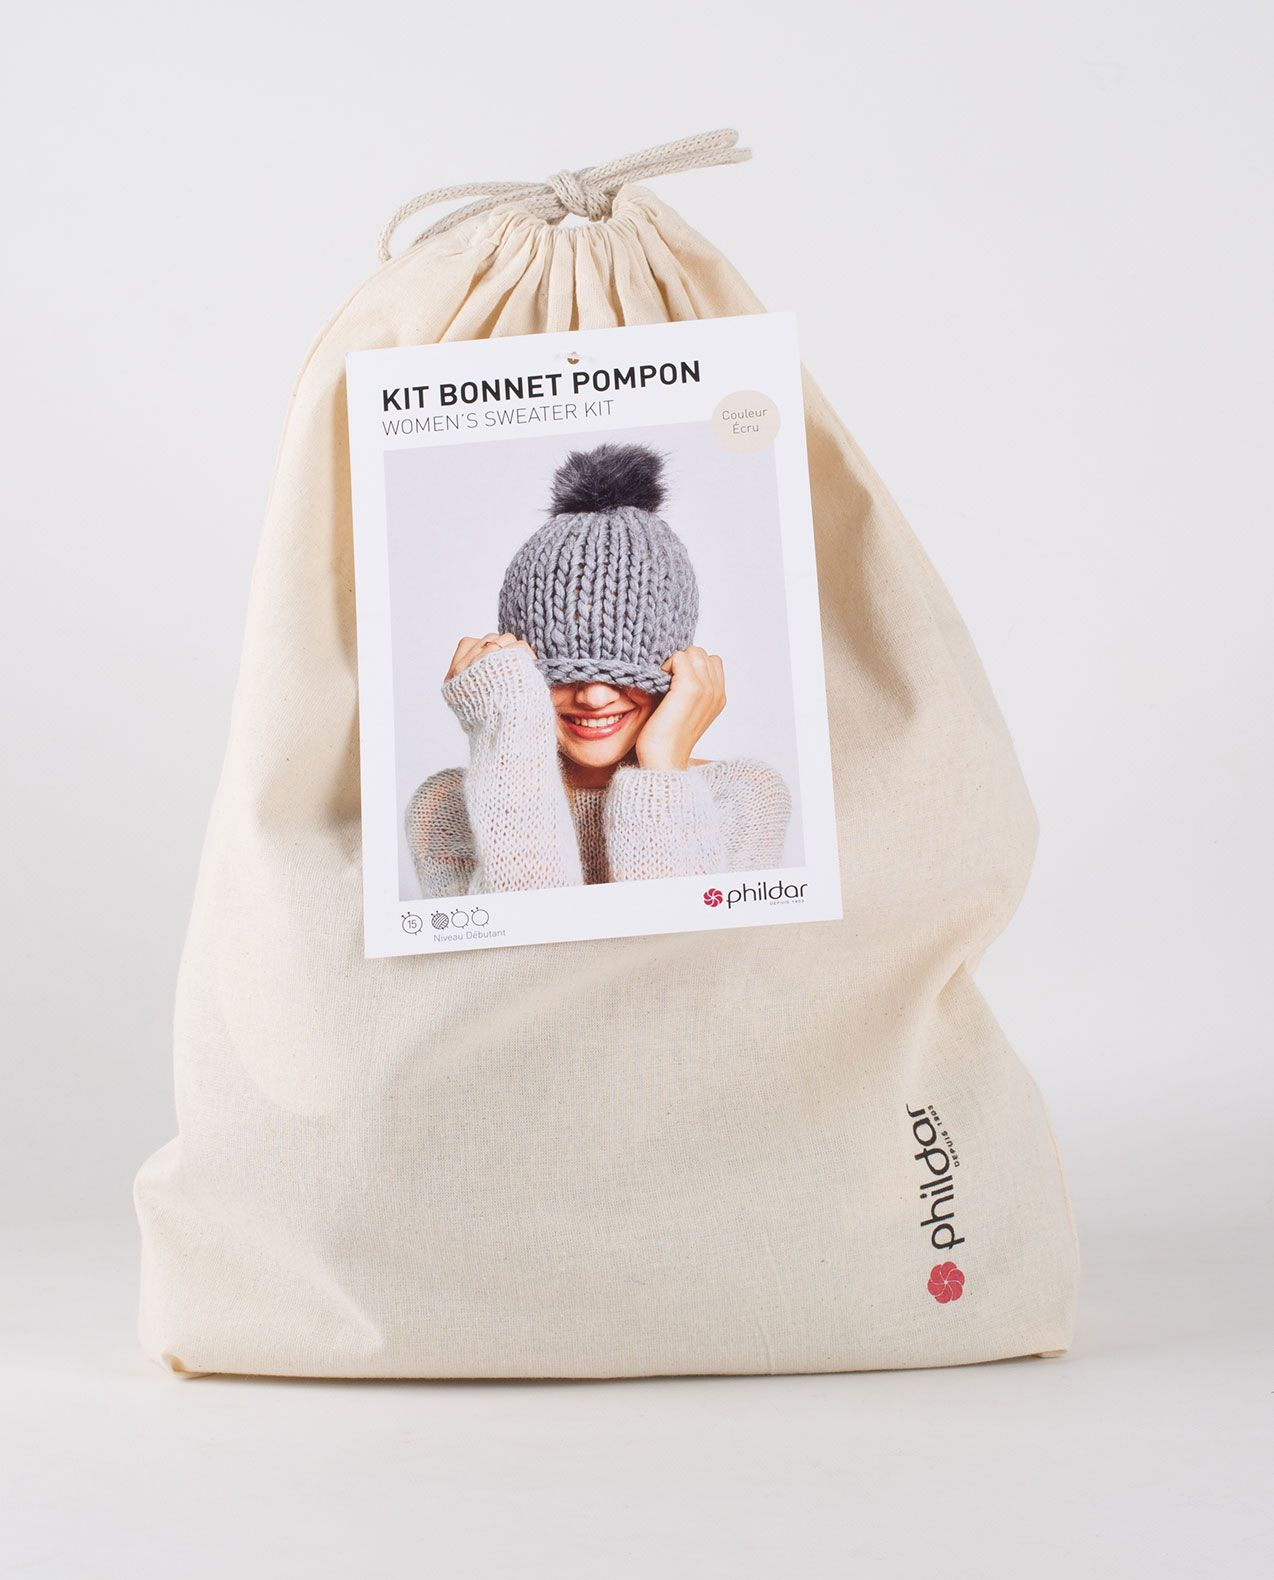 Kit diy - bonnet pompon